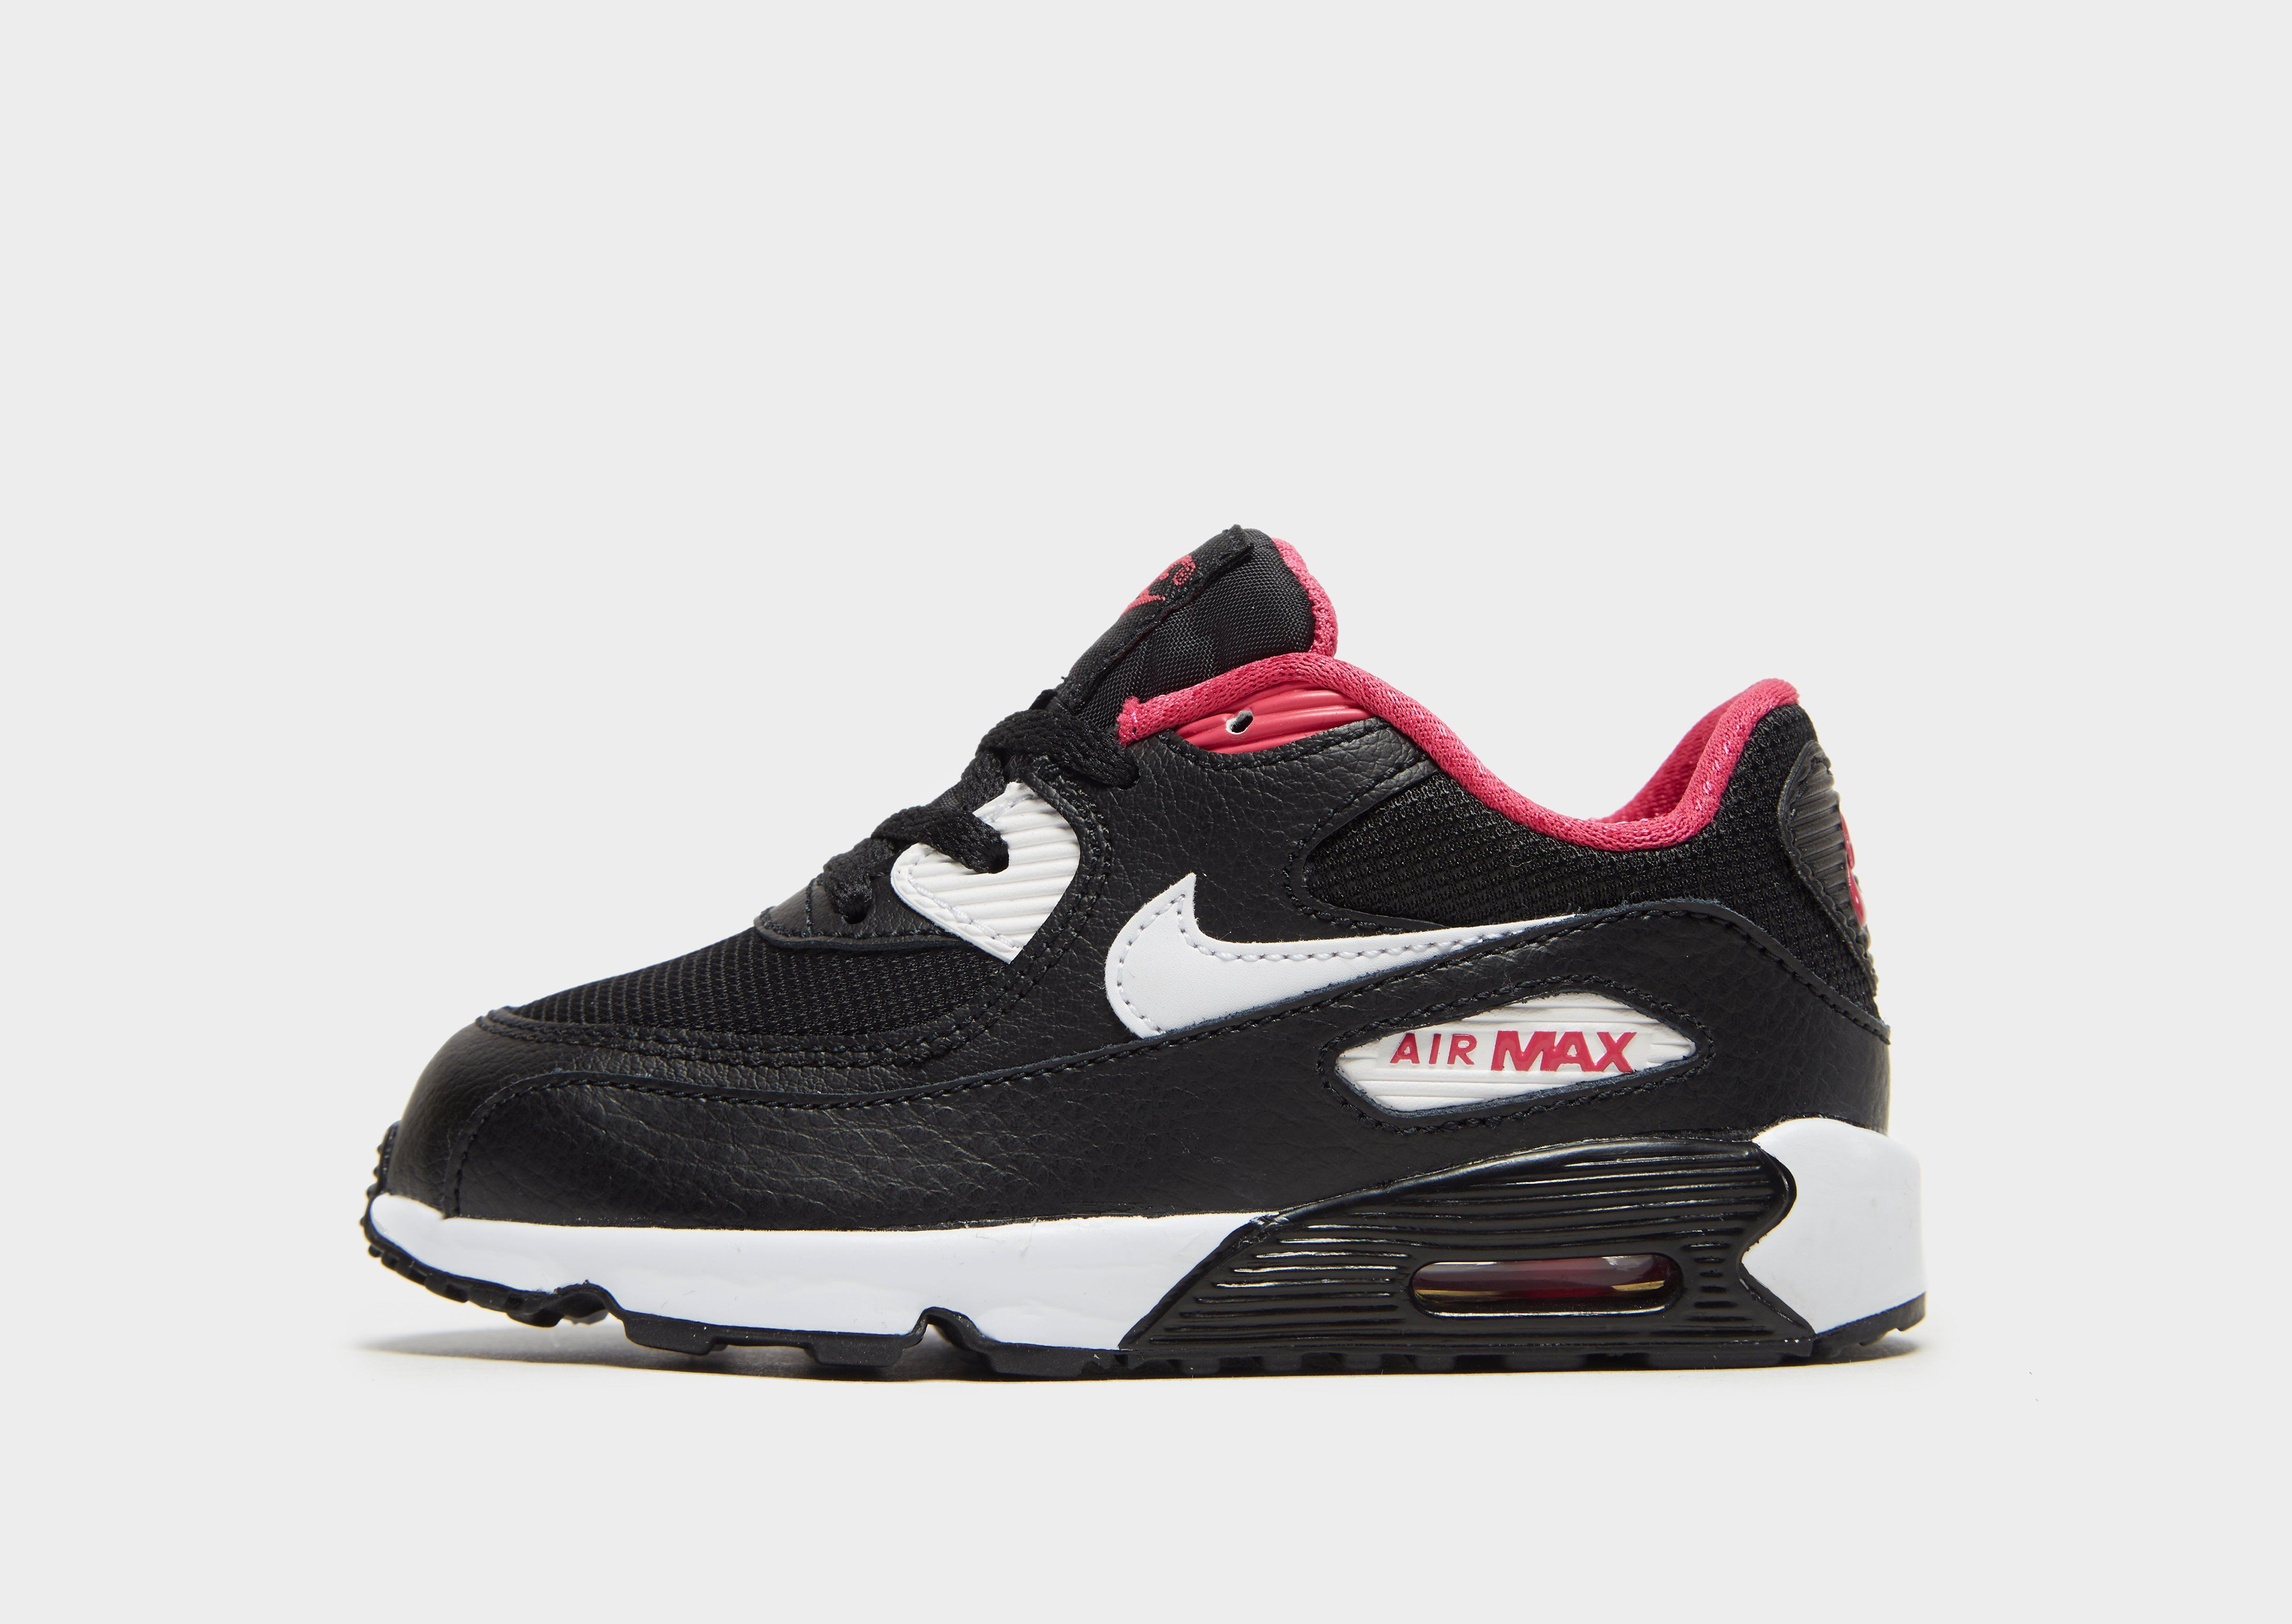 nike air max 90 infant jd sports. Black Bedroom Furniture Sets. Home Design Ideas